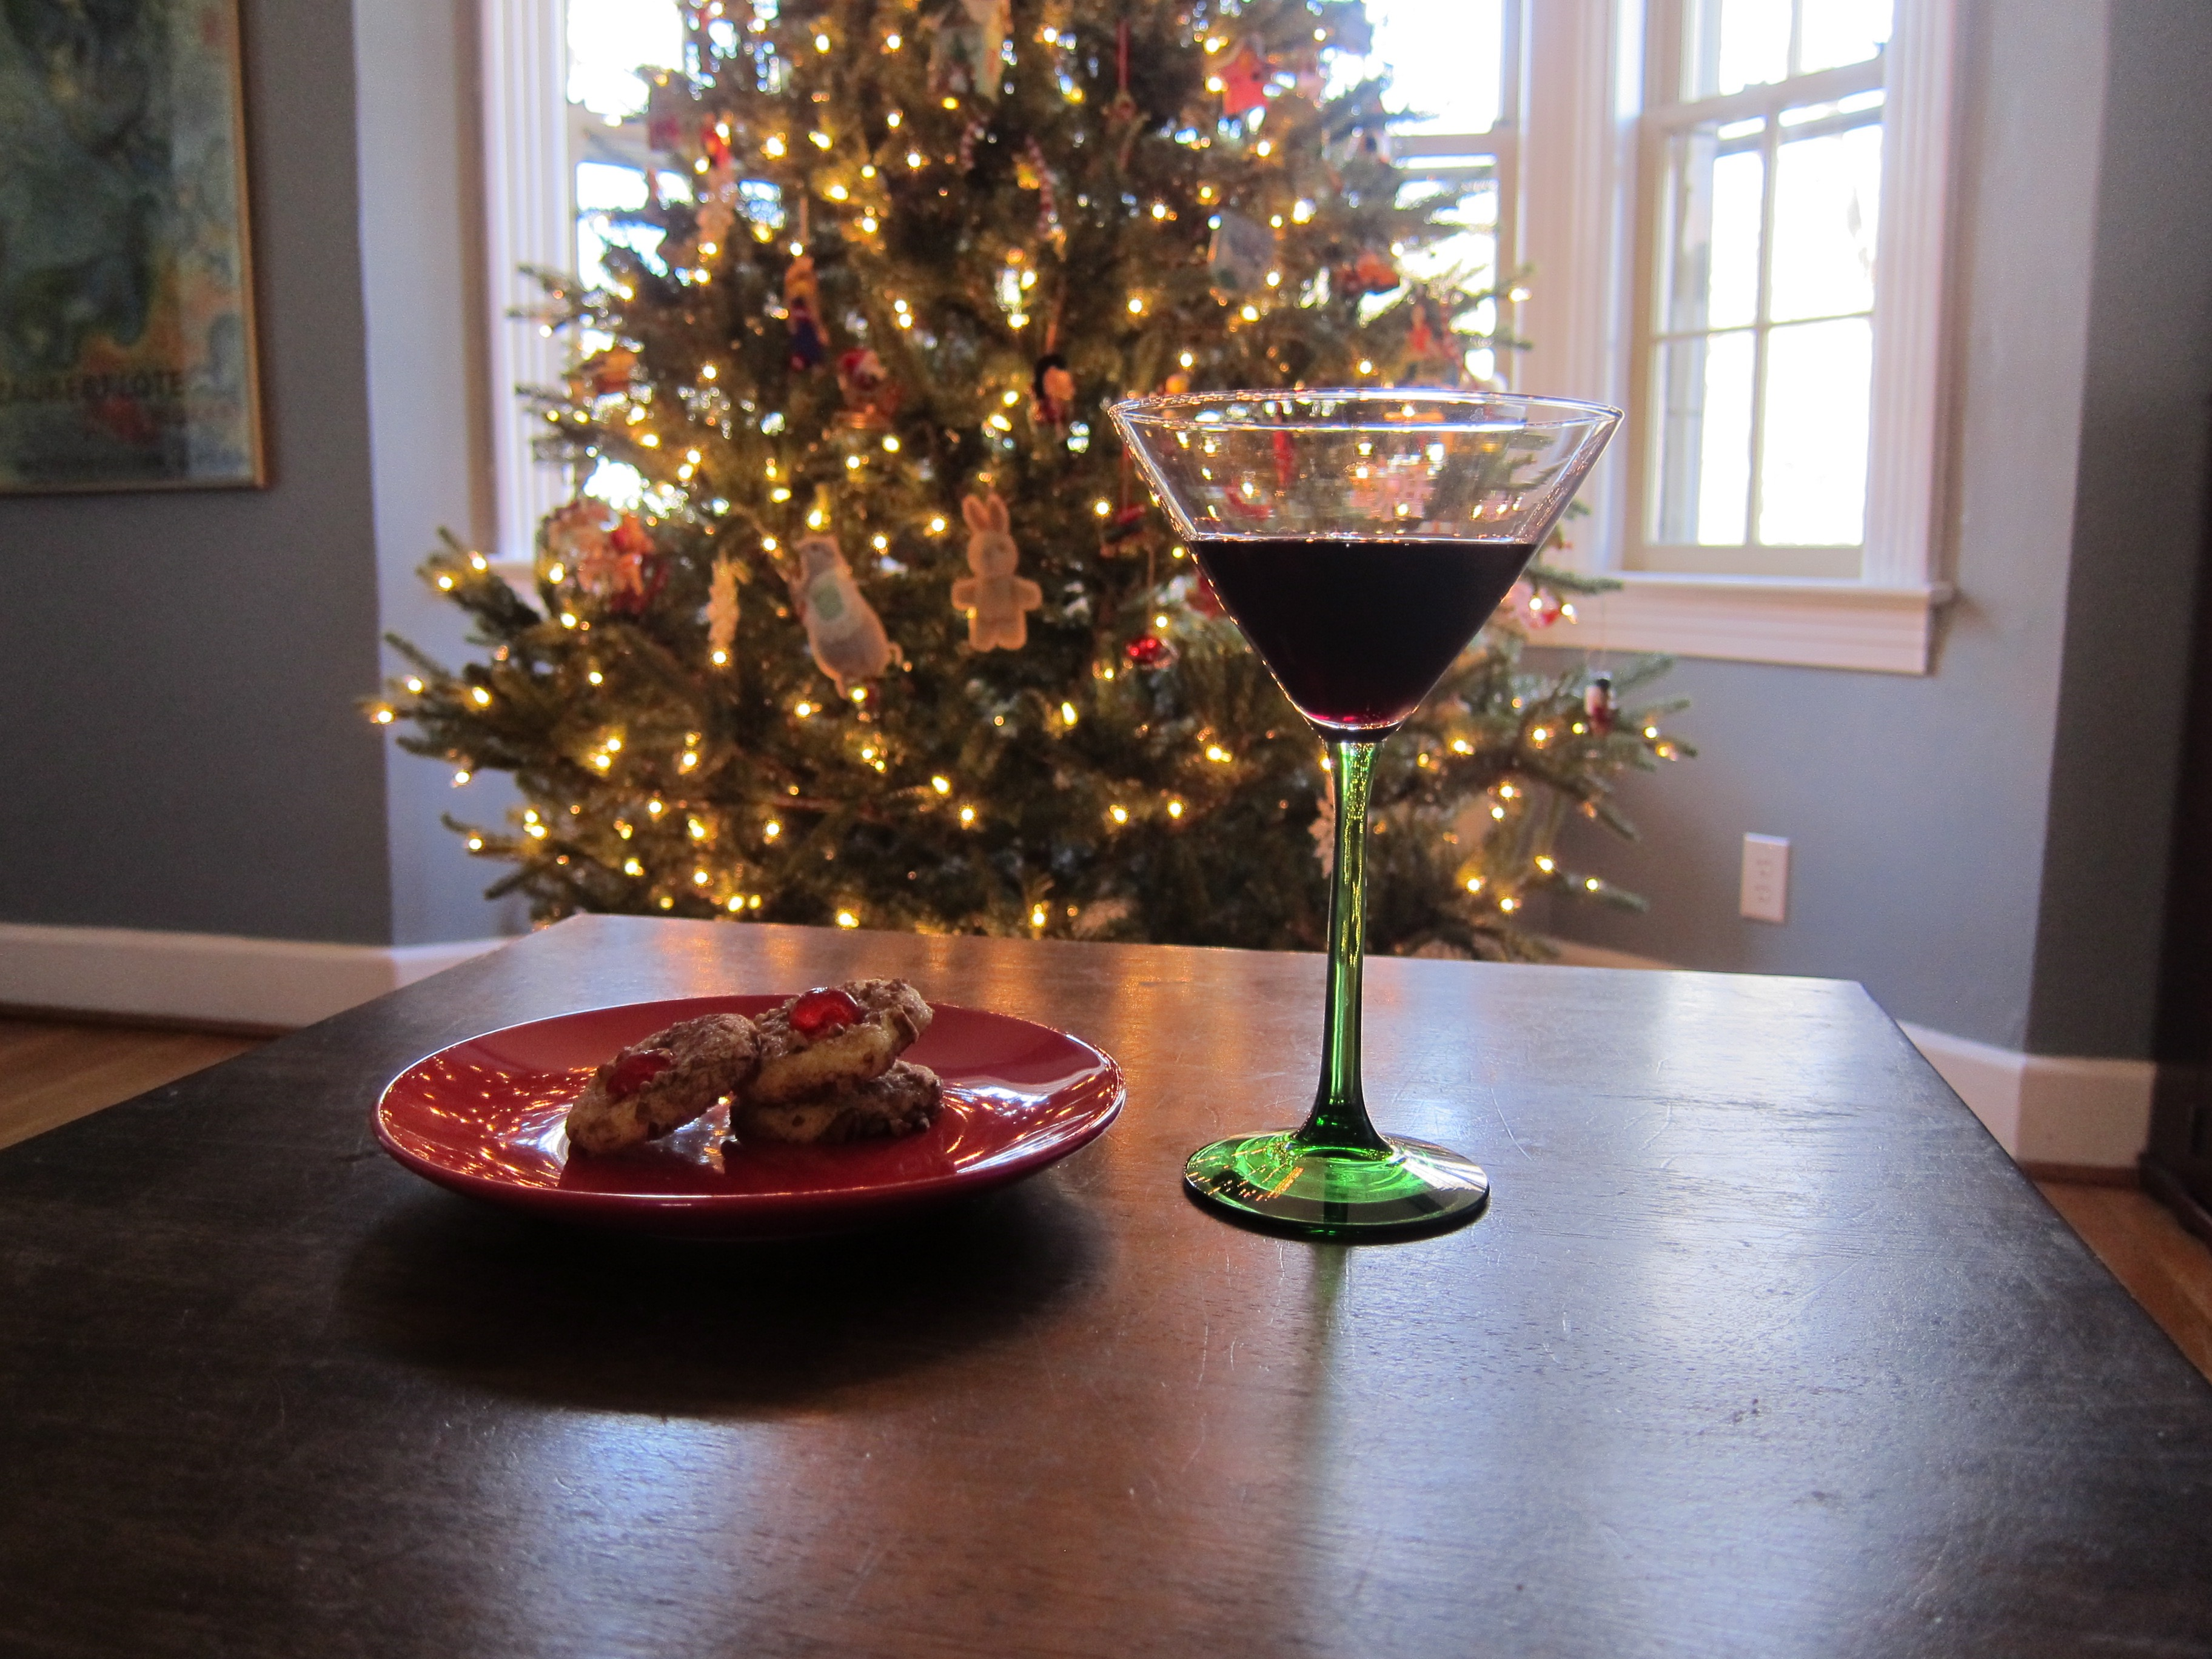 plate of cookies, cocktail, and Christmas tree